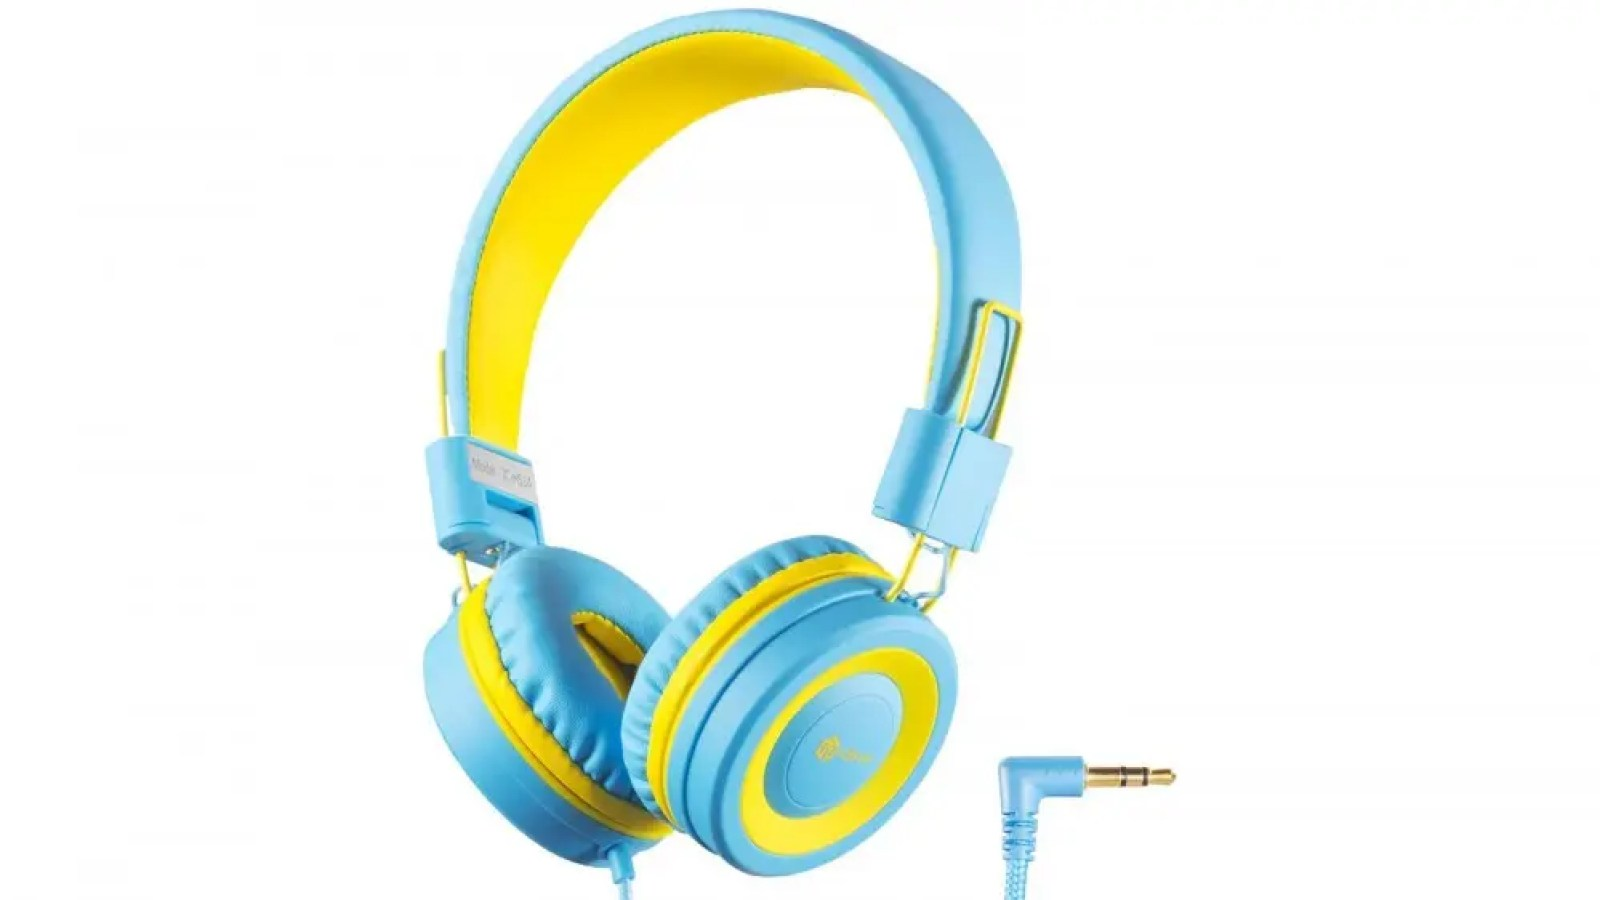 iClever super adjustable kids headphones